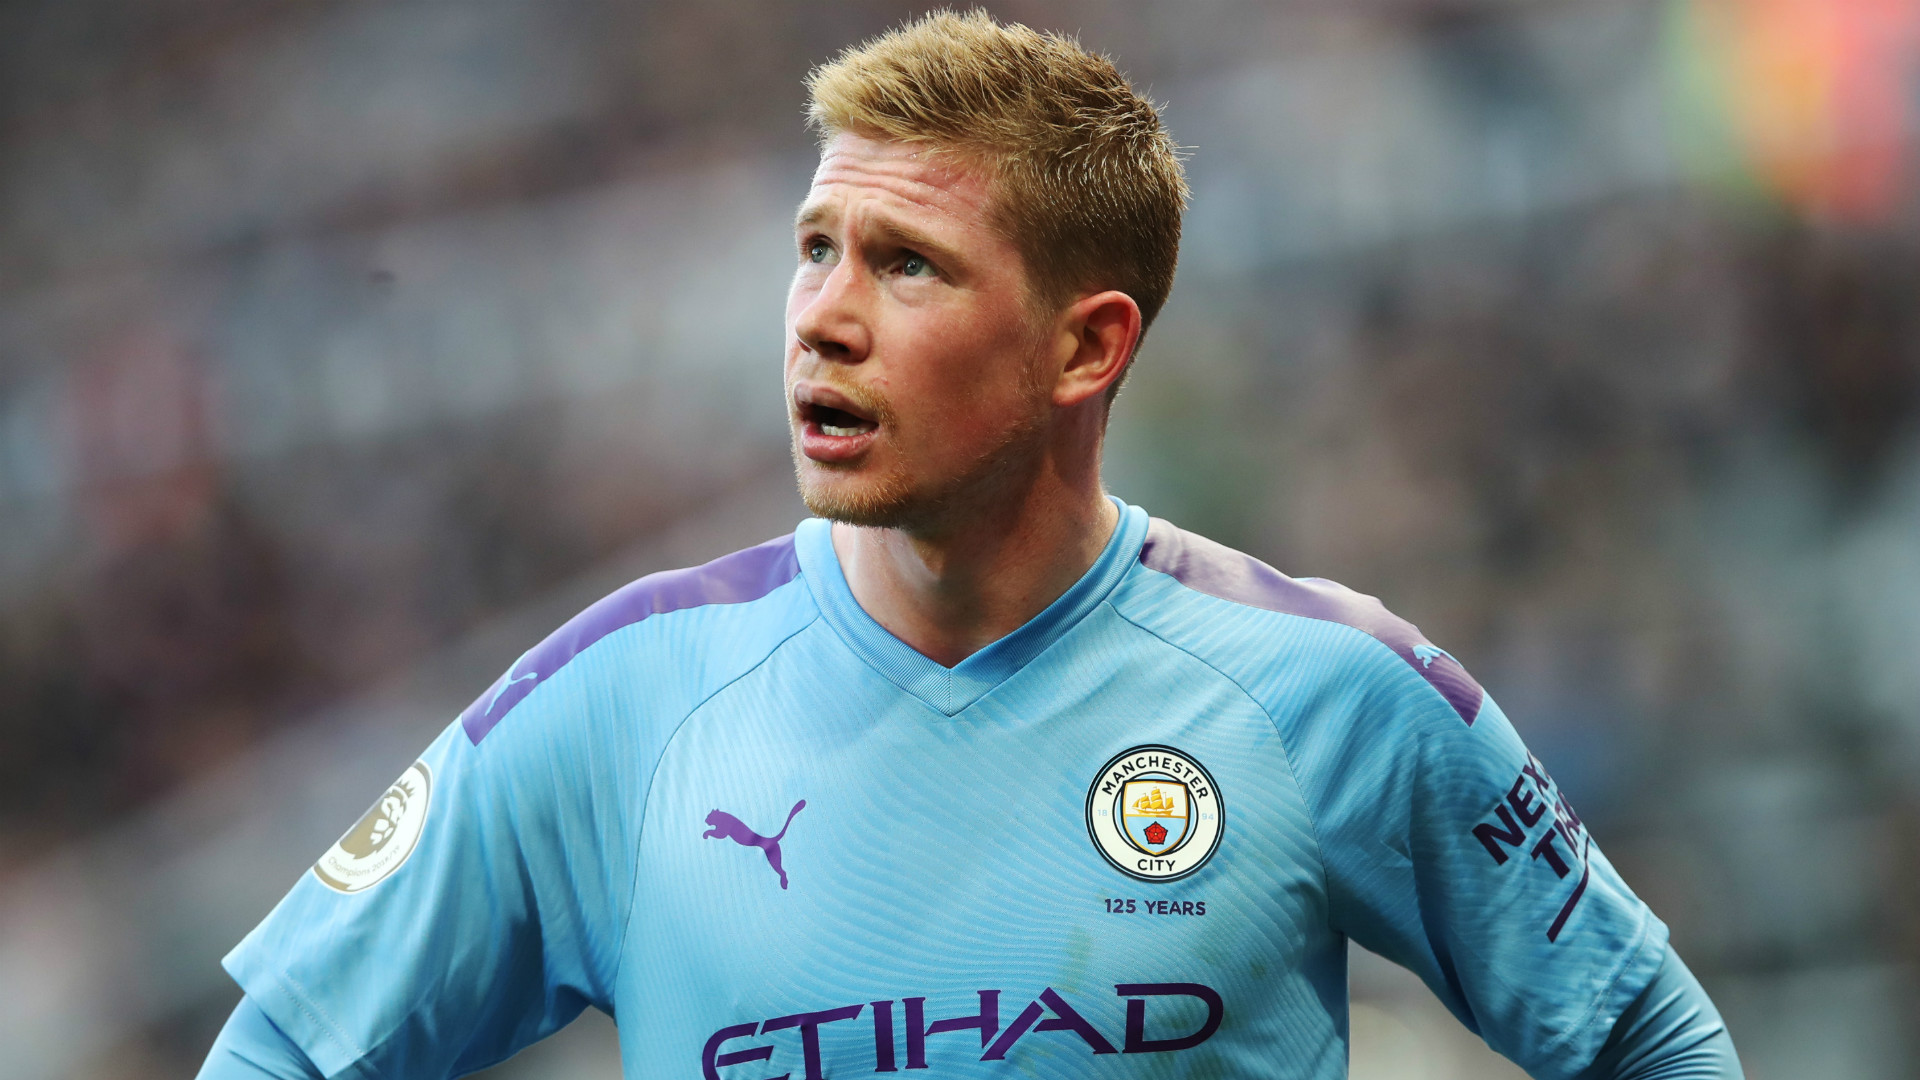 'De Bruyne can't improve, he's already world class' – Man City star saluted by former team-mate Olic